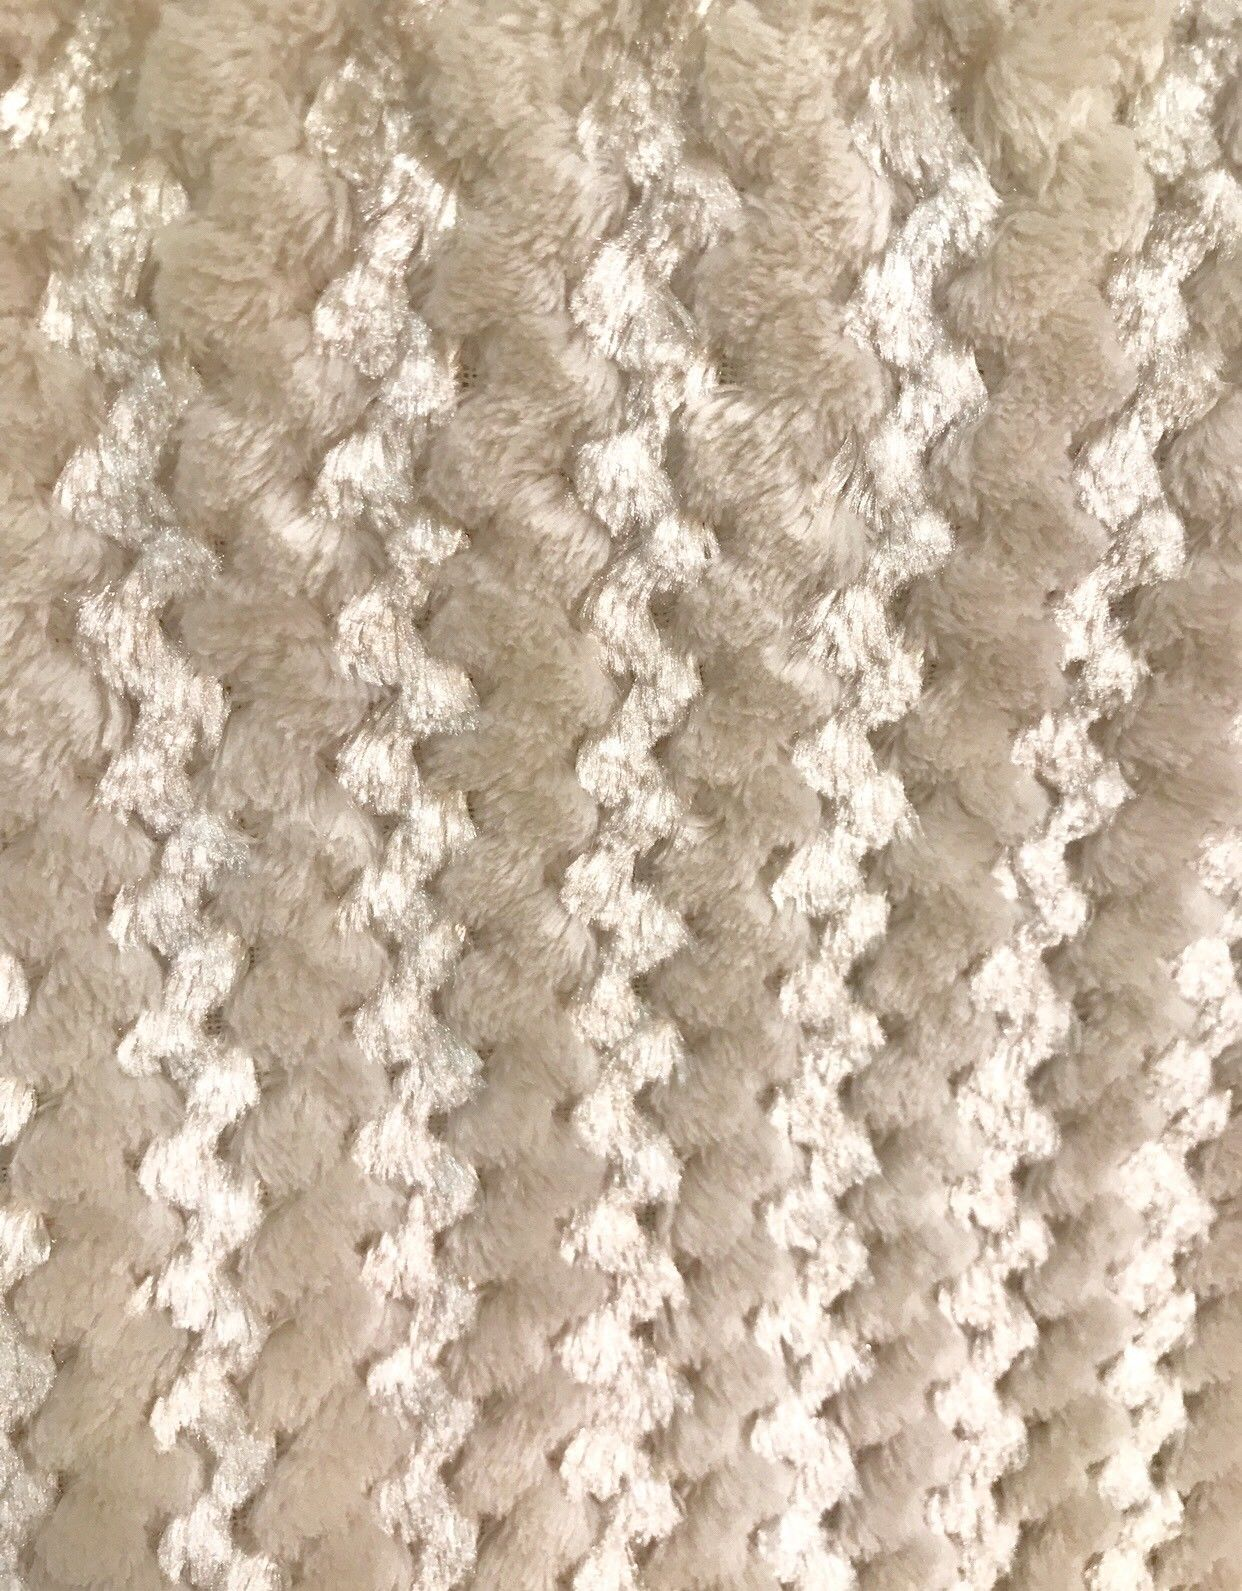 Designer Luxury Faux Fur Plush Fabric- Beige And Shell- Sold By The Yard - Fancy Styles Fabric Pierre Frey Lee Jofa Brunschwig & Fils